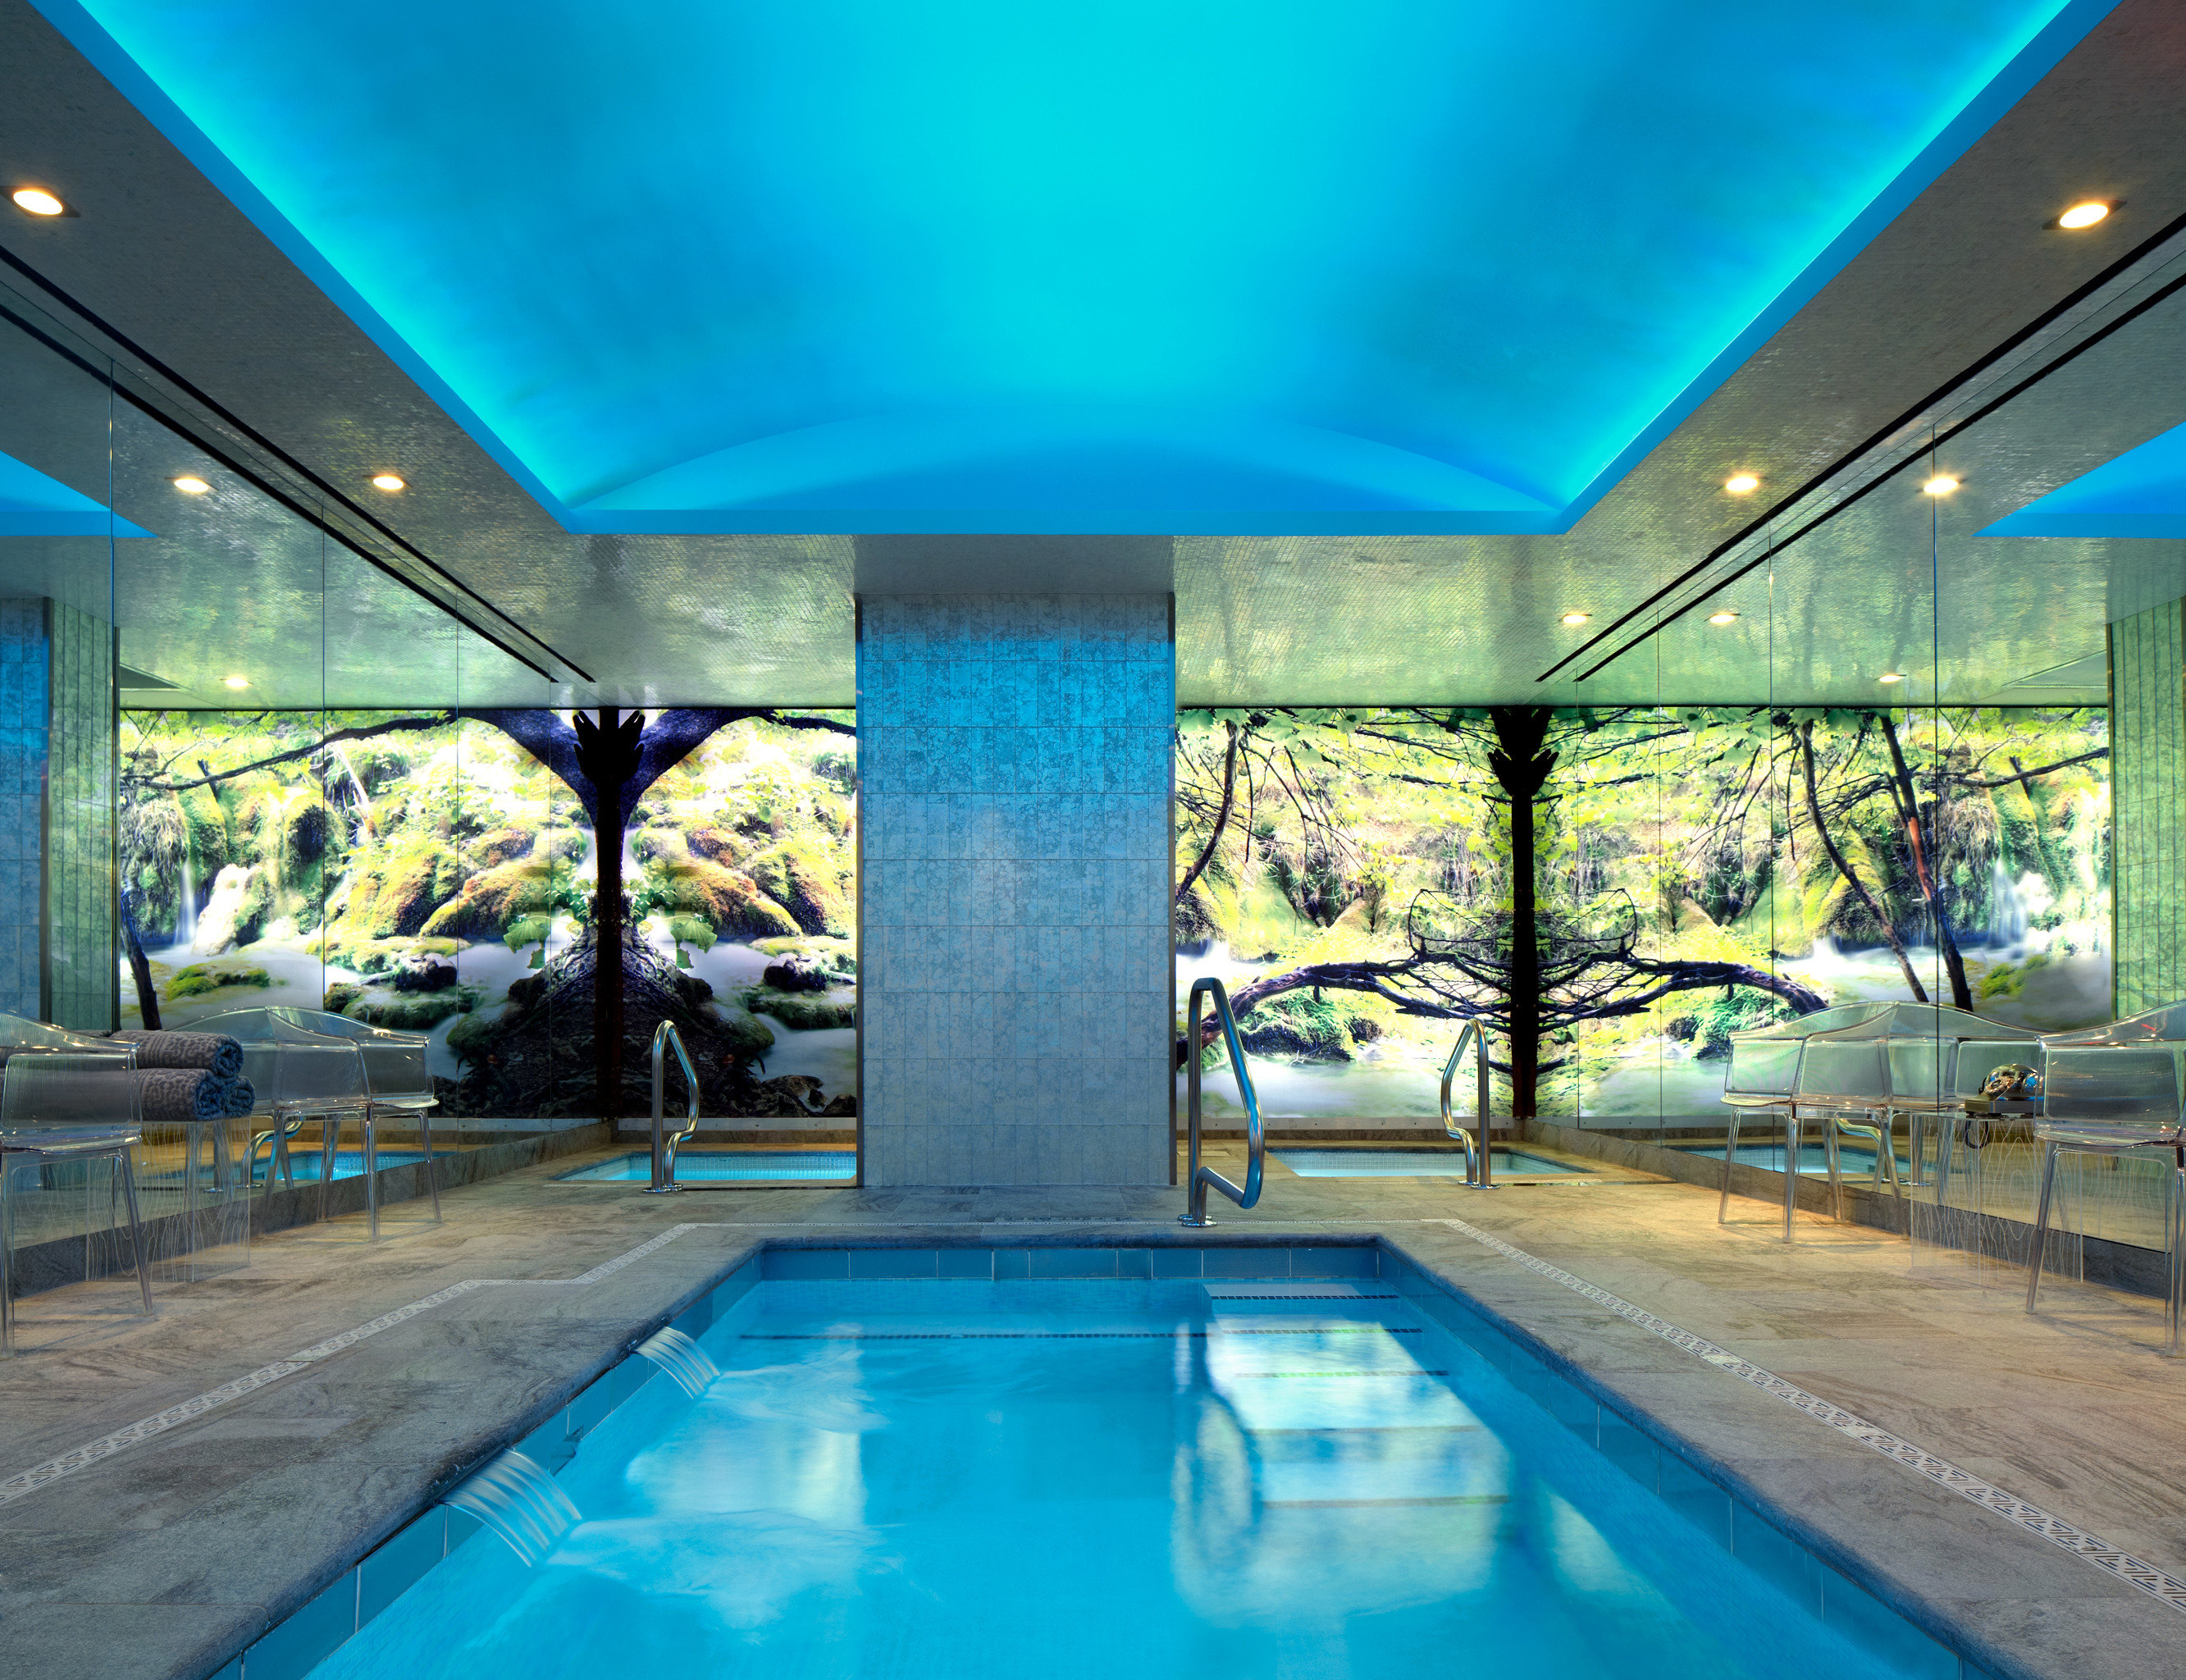 Lounge Luxury Pool blue swimming pool leisure property leisure centre Resort condominium daylighting empty